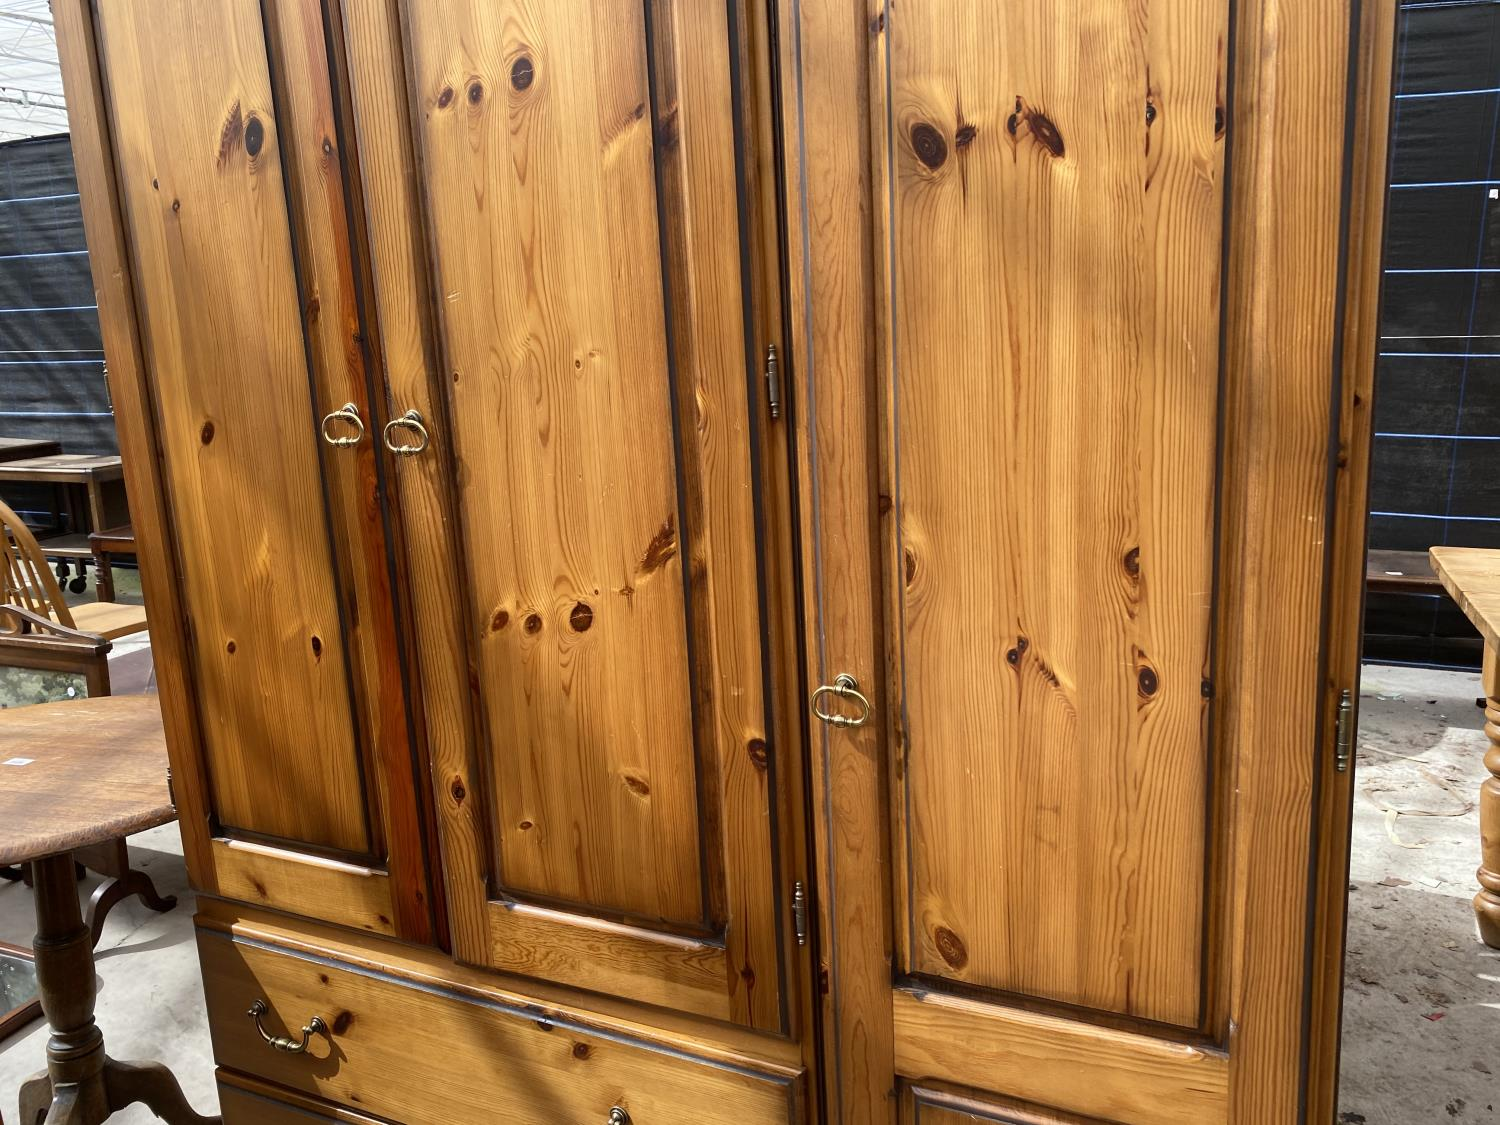 """A MODERN PINE COMBINATION WARDROBE, 52.5"""" WIDE - Image 3 of 4"""